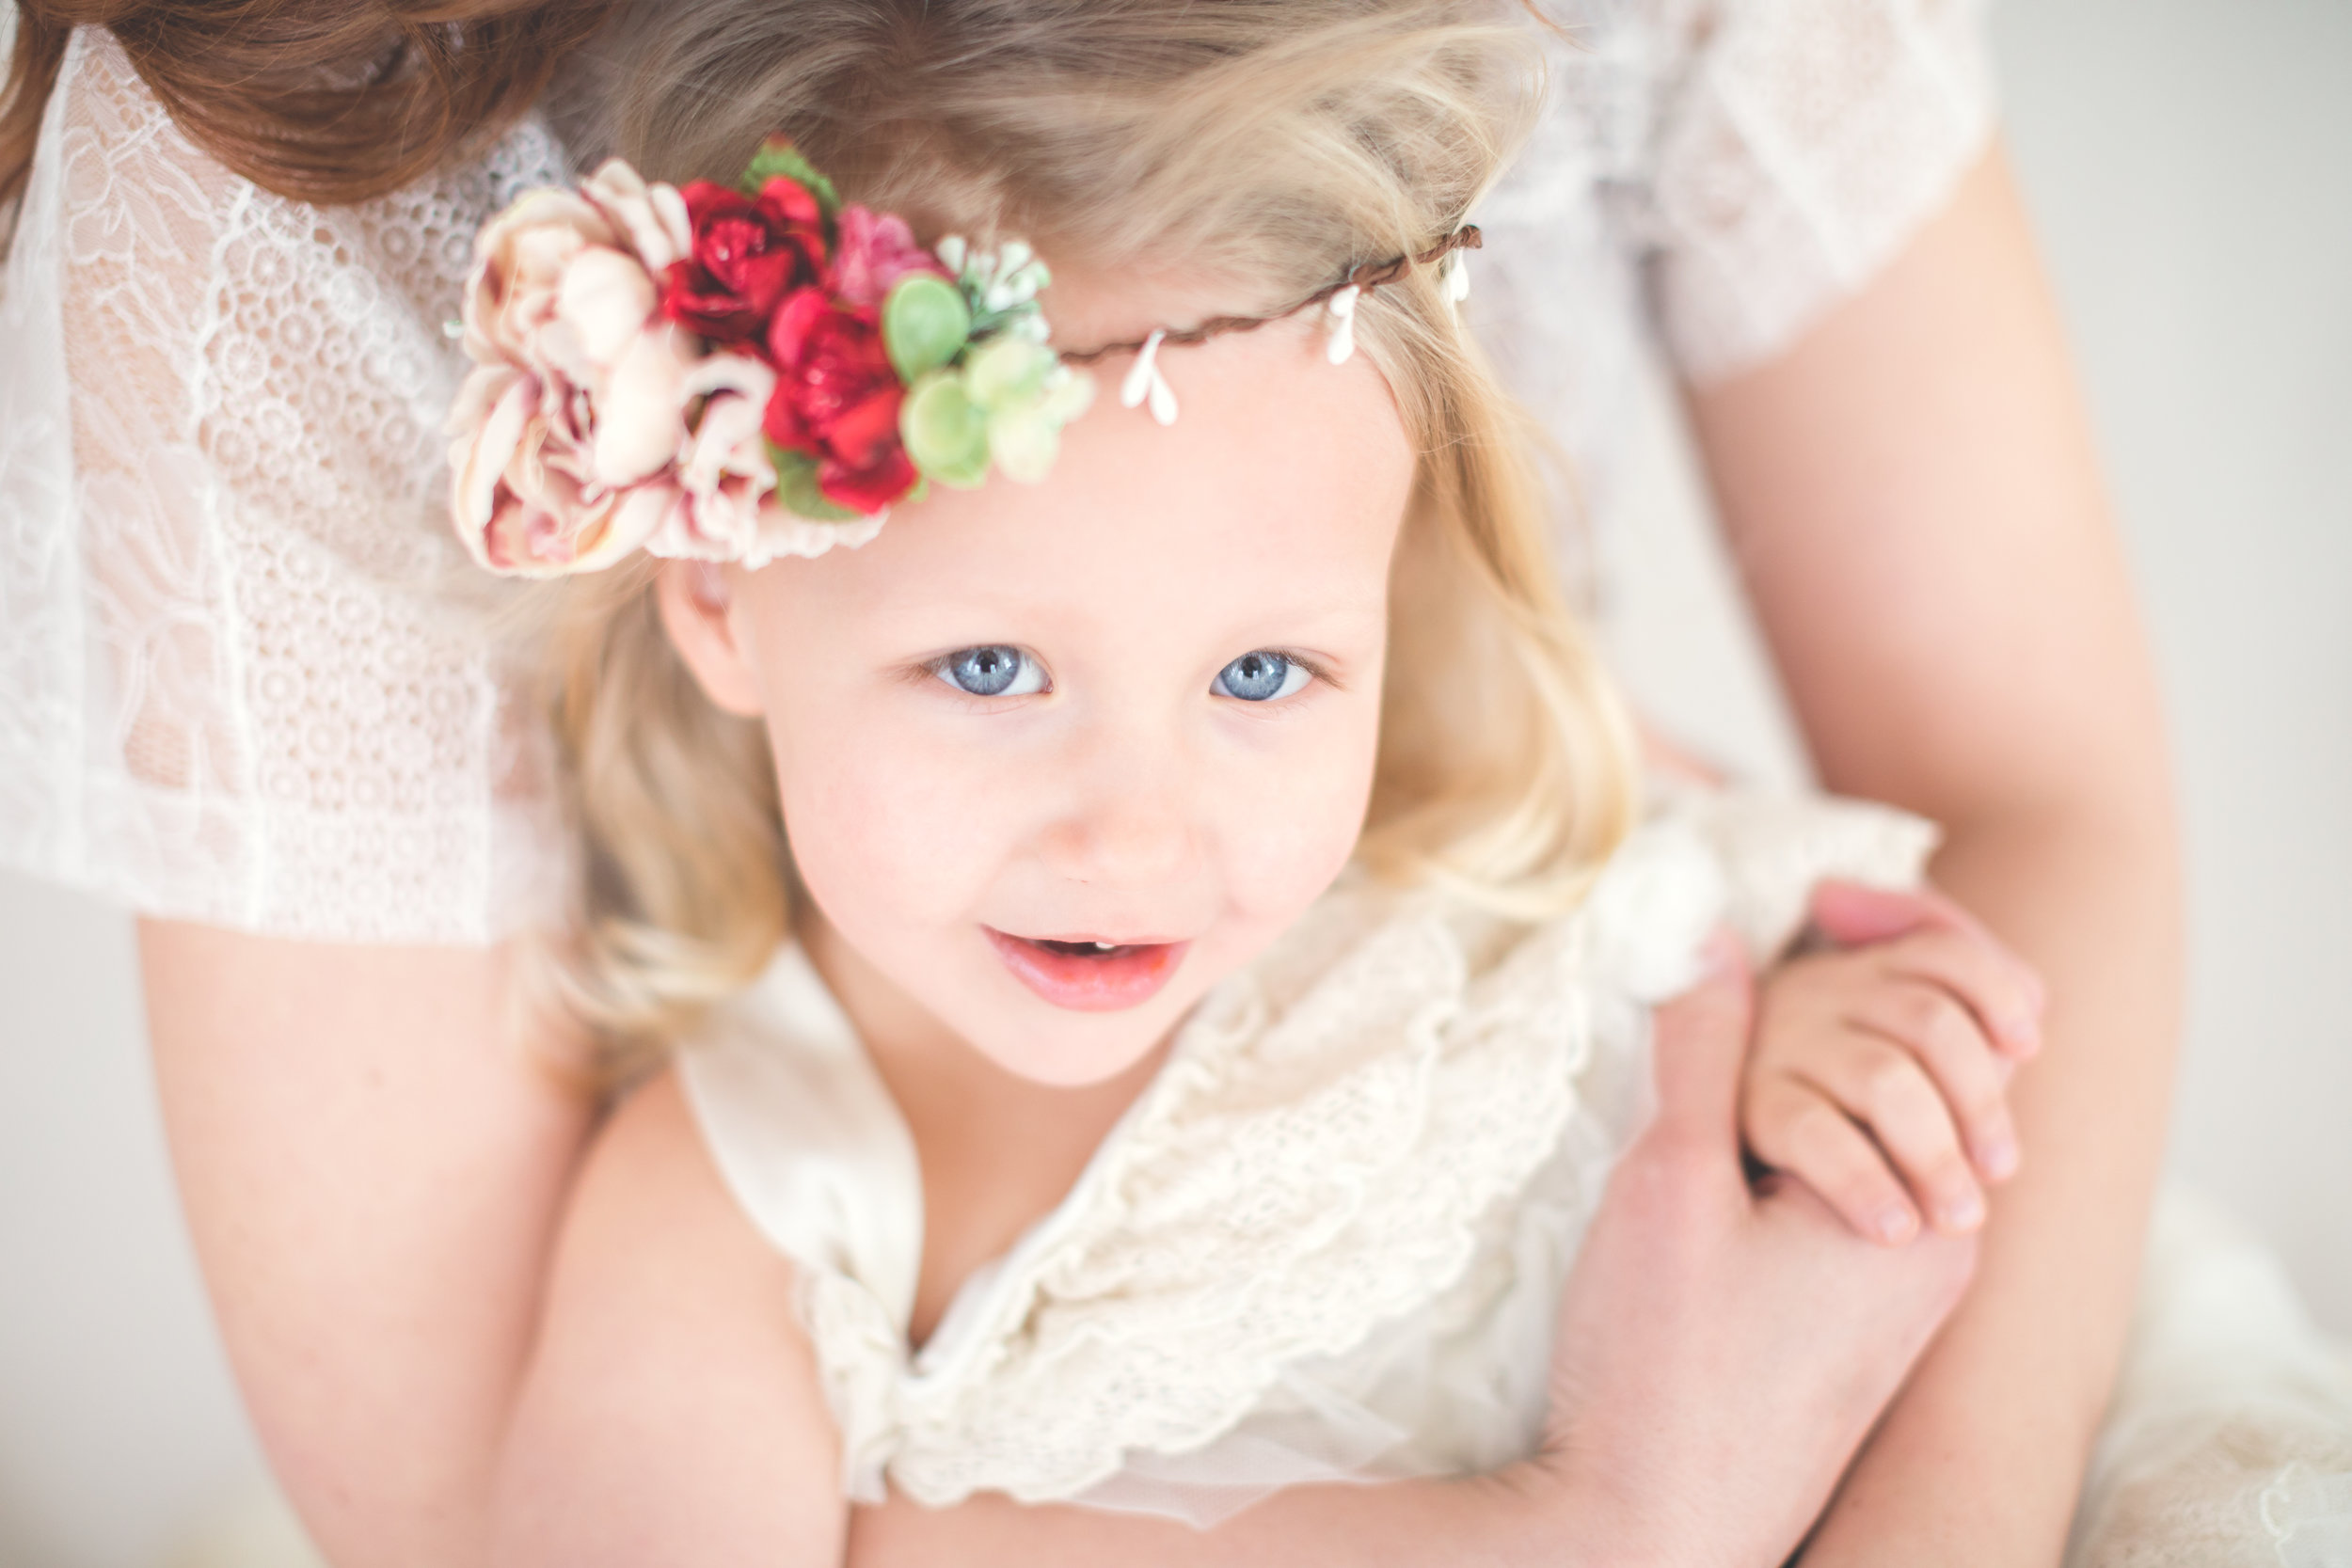 Mother-daughter flower crown session. Sudbury family photographer. Stow, Concord, Wayland photography.